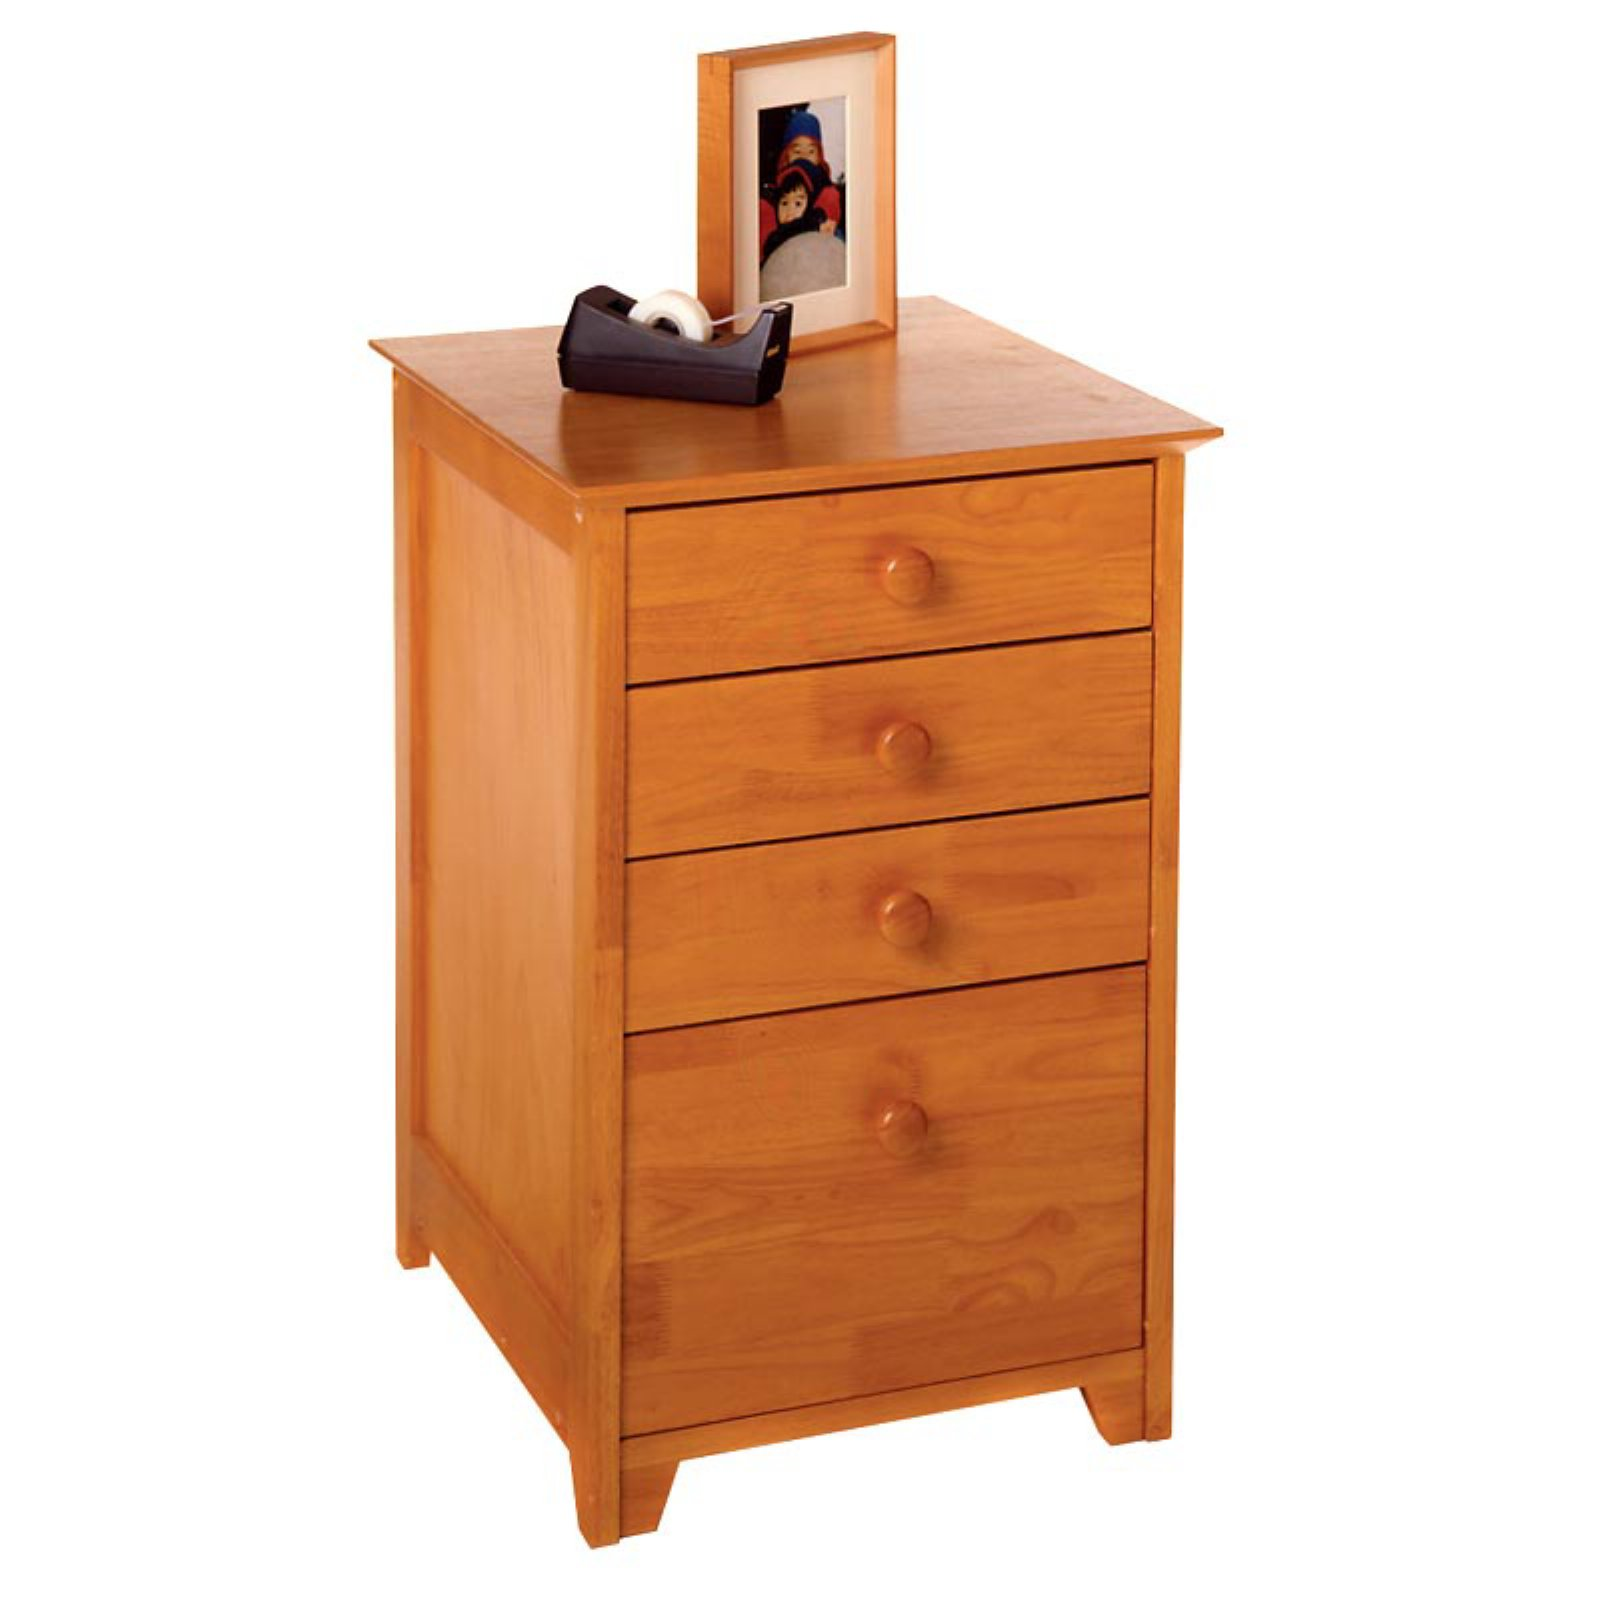 Winsome 2 Drawer Vertical Wooden File Cabinet, Honey